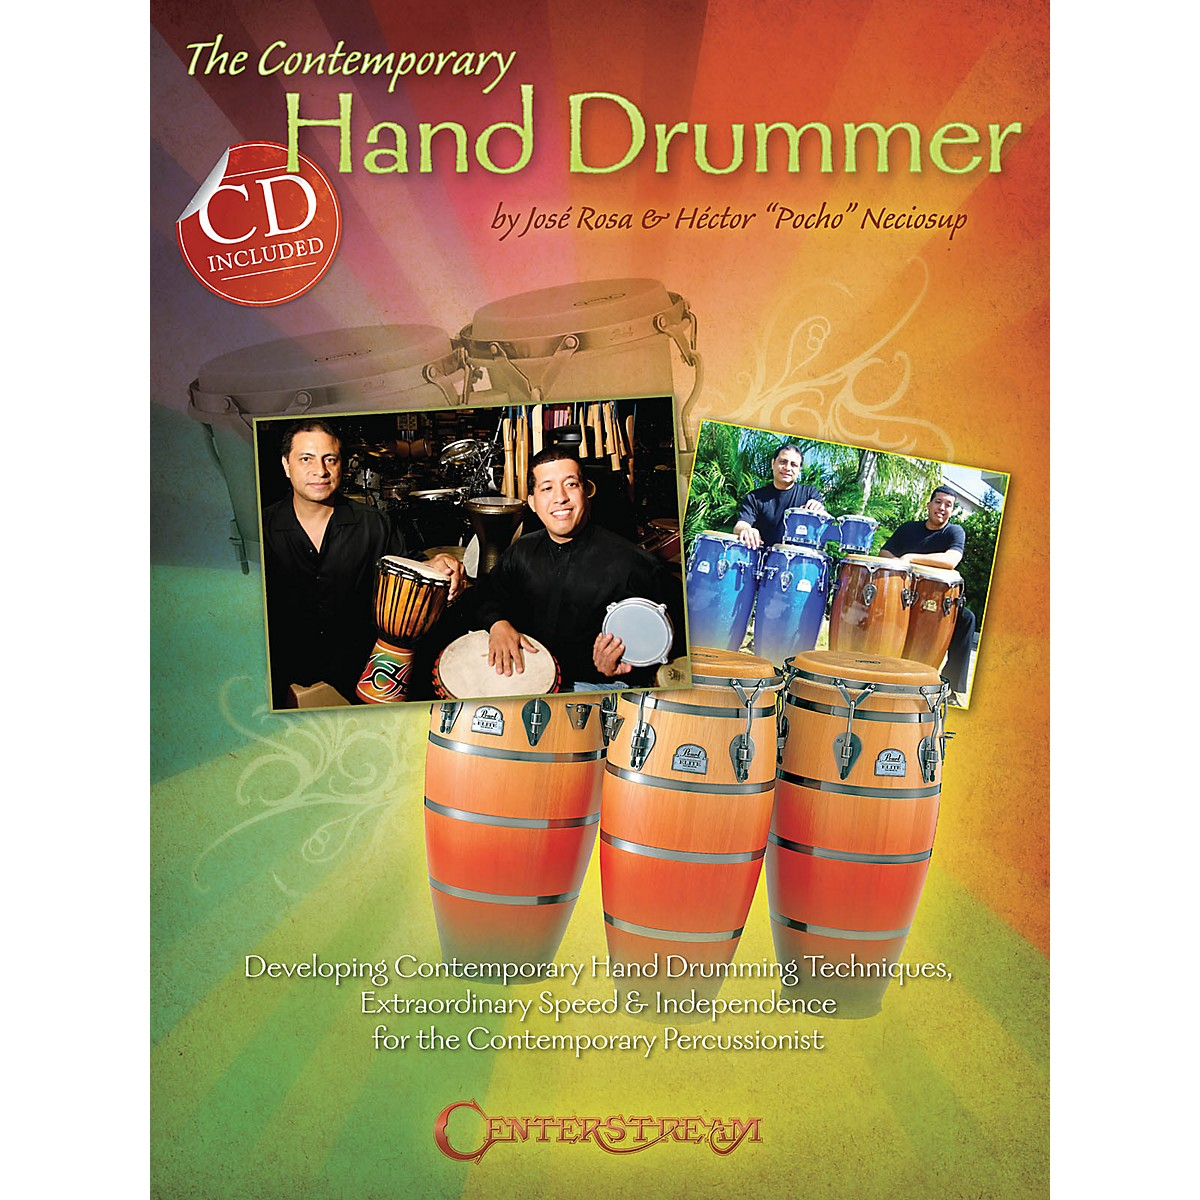 Centerstream Publishing The Contemporary Hand Drummer Percussion Series Softcover with CD Written by José Rosa